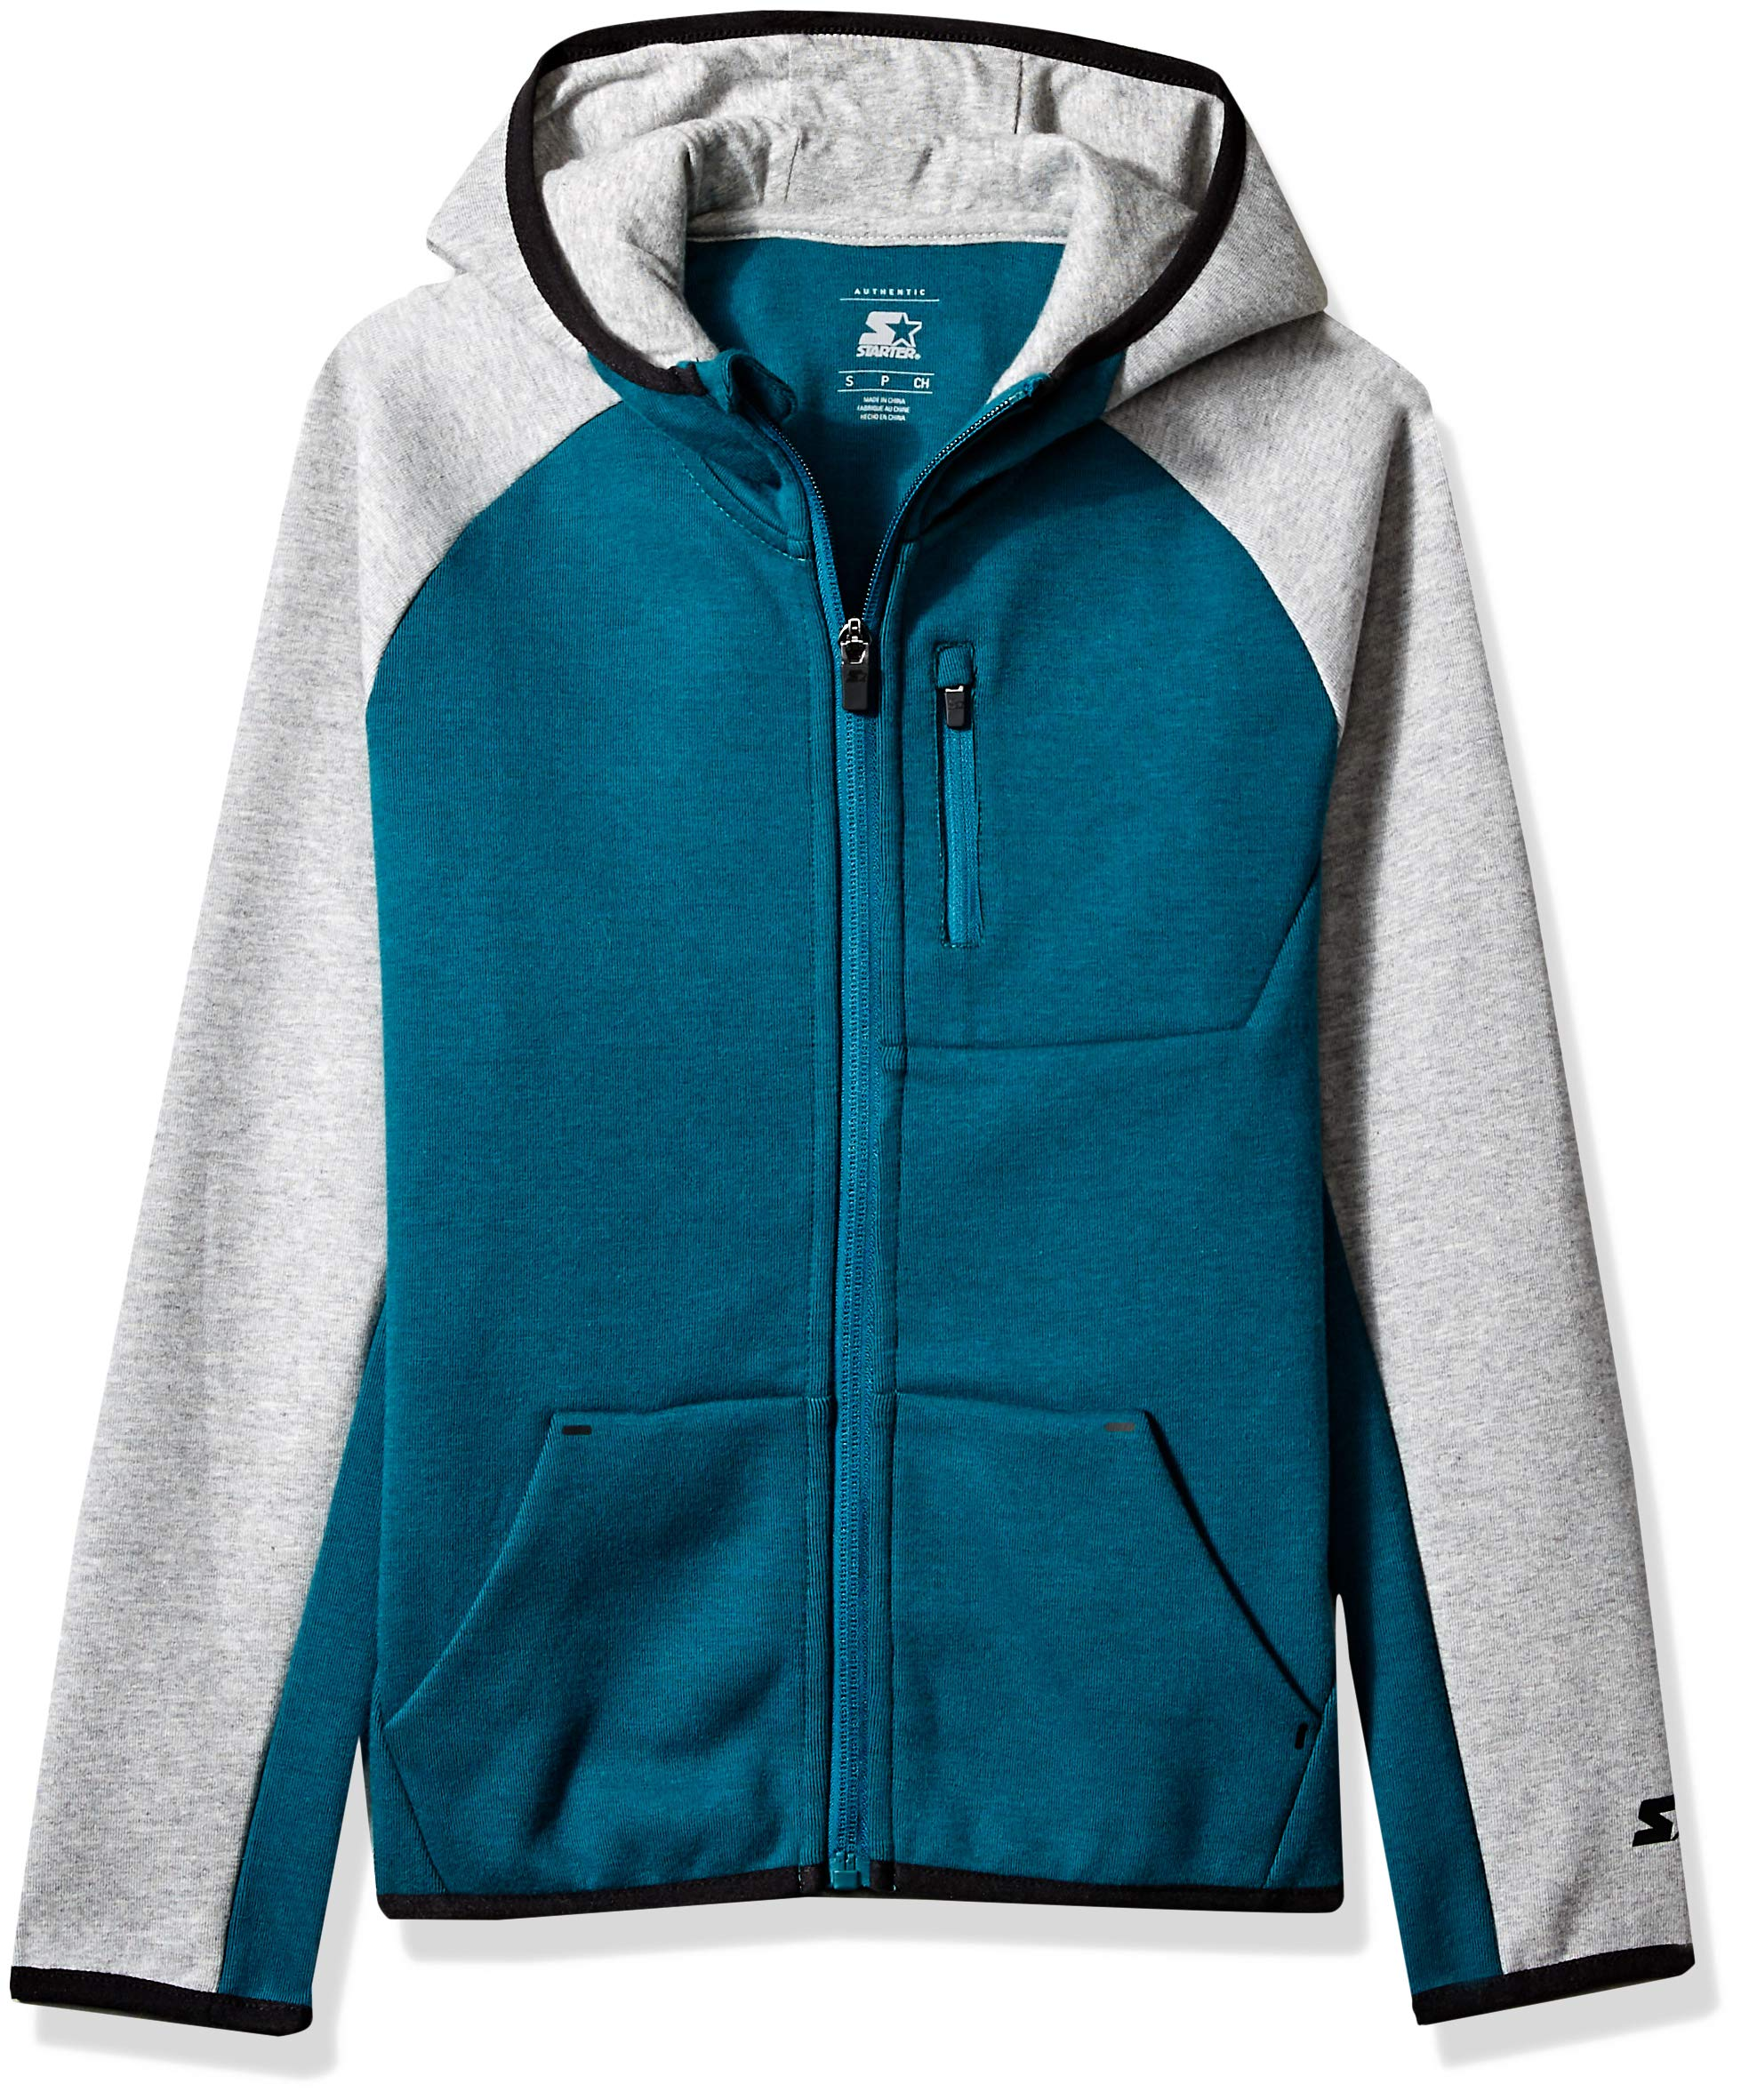 Starter Boys' Double Knit Colorblocked Zip-Up Hoodie, Amazon Exclusive, Scuba Green Heather, M